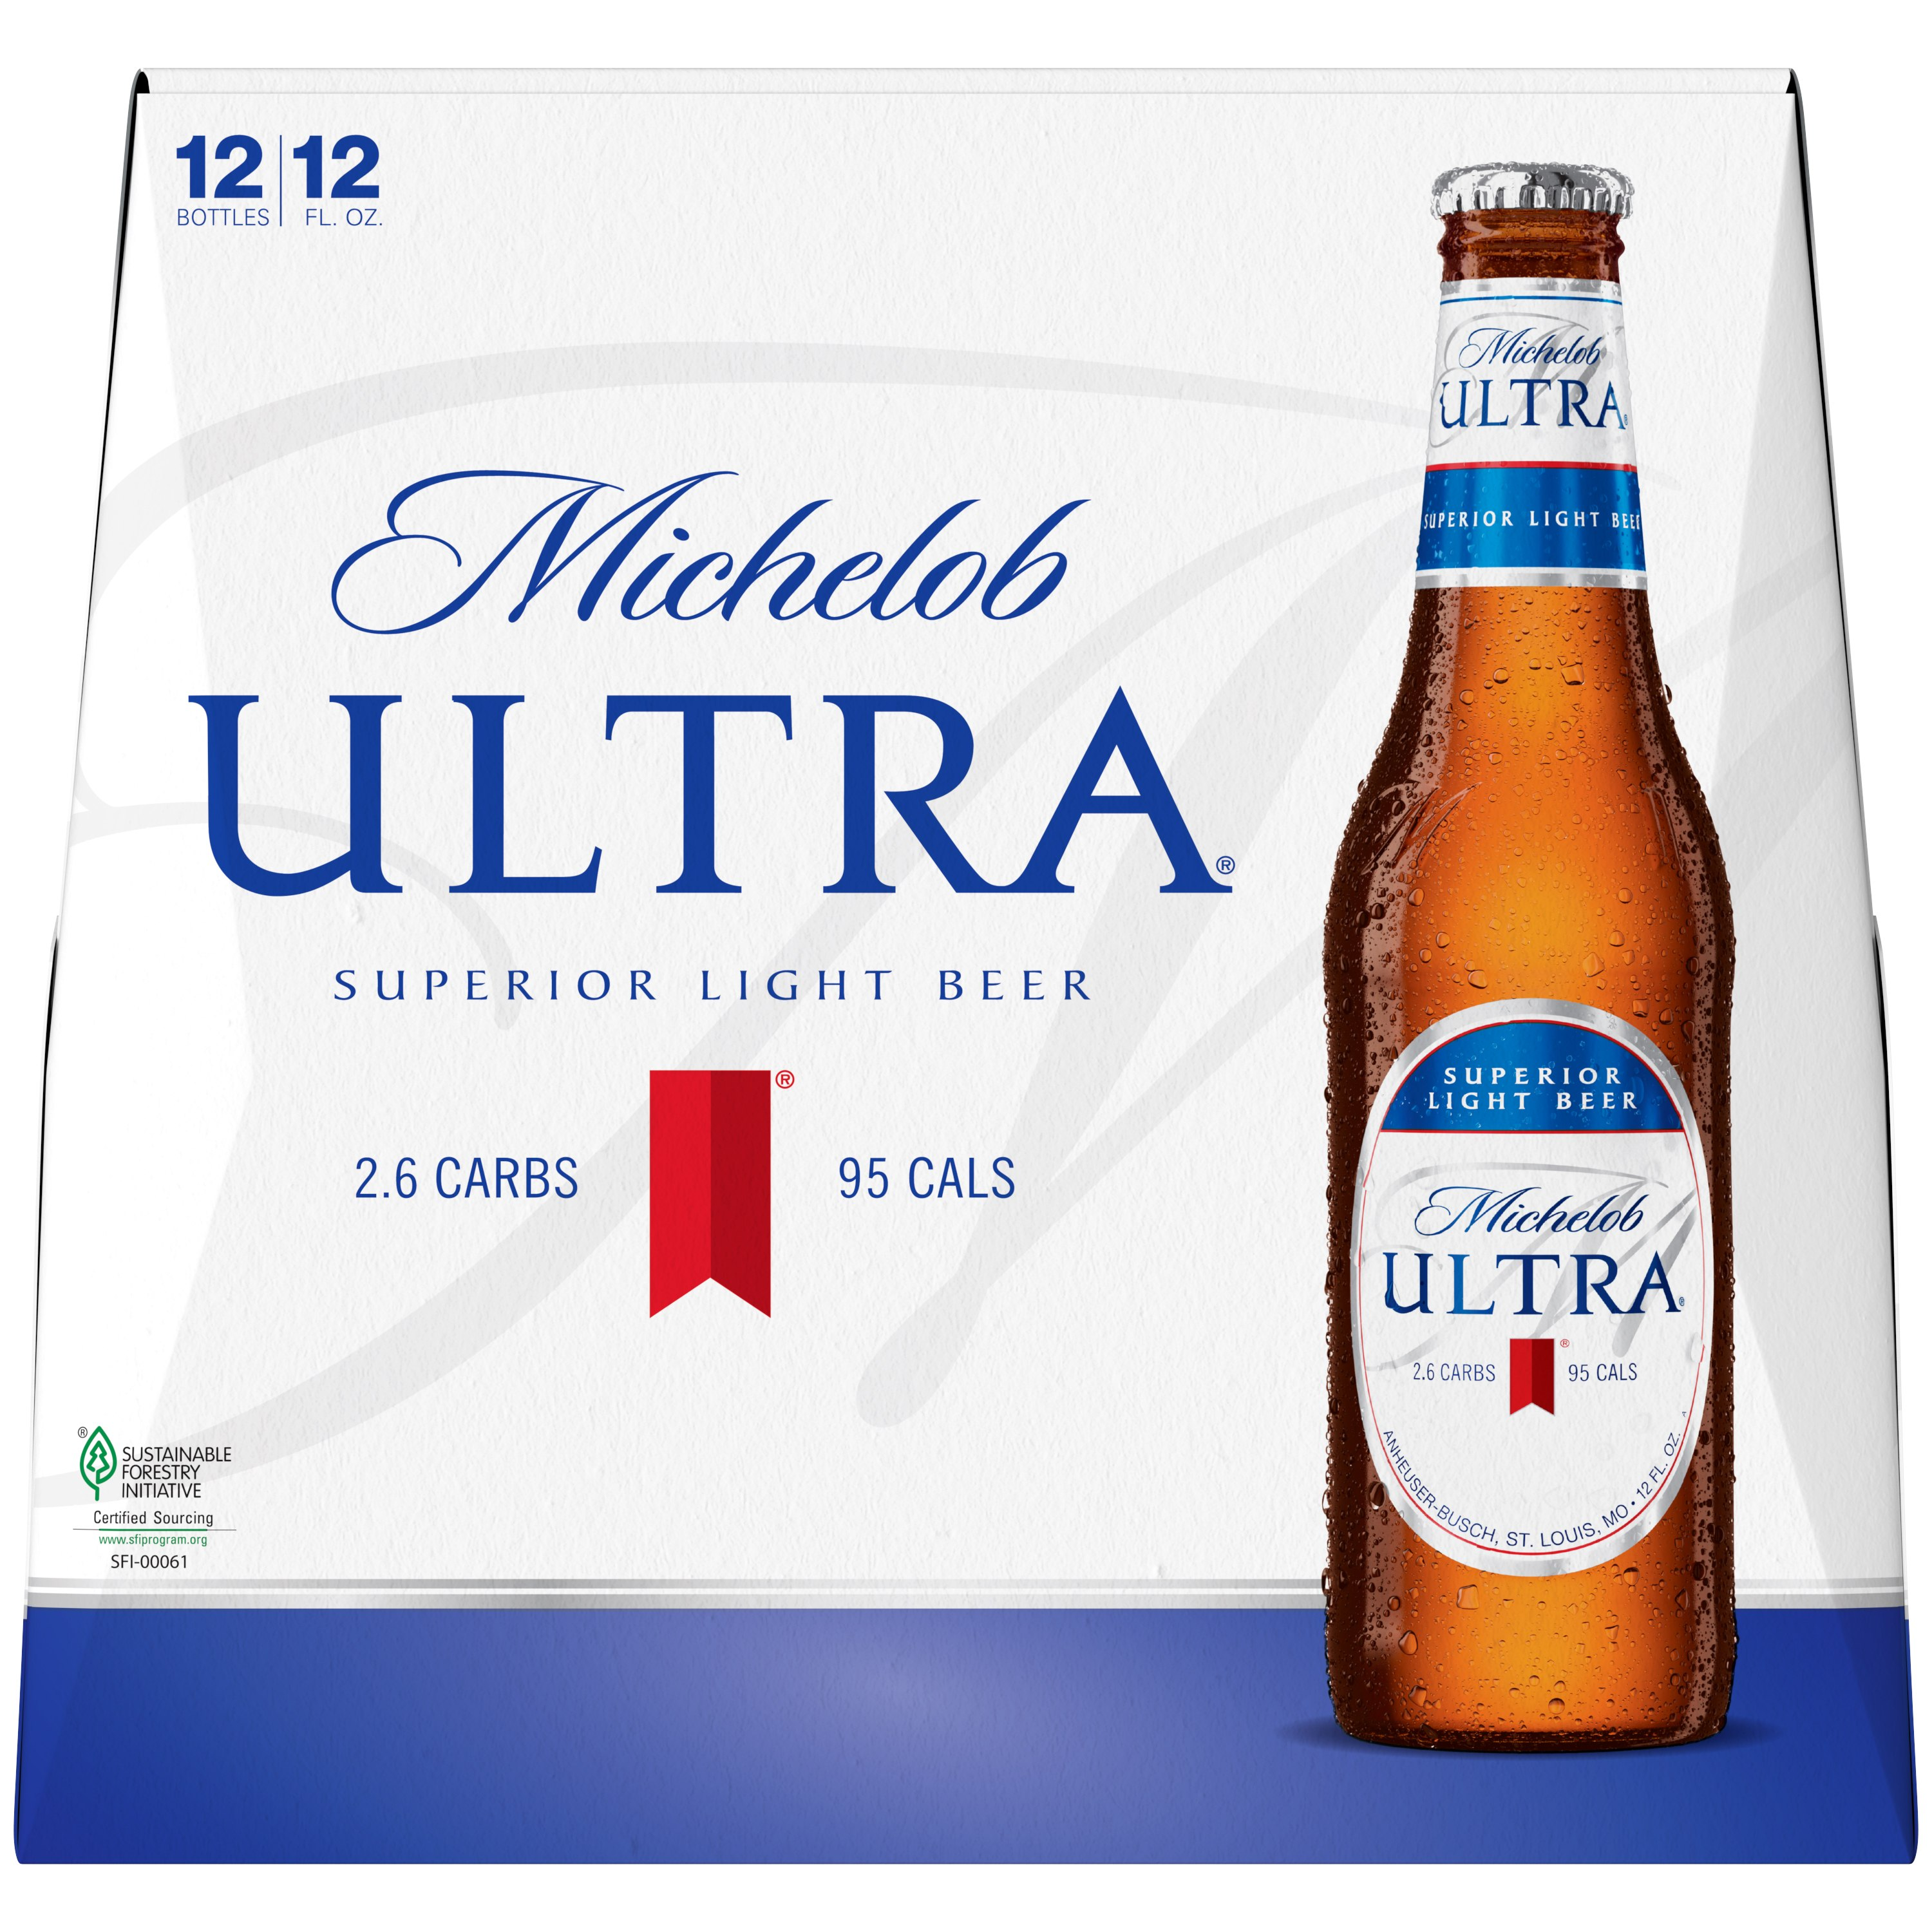 Michelob Ultra Beer, 12 Pk 12 Fl. Oz. Bottles   Walmart.com Great Pictures